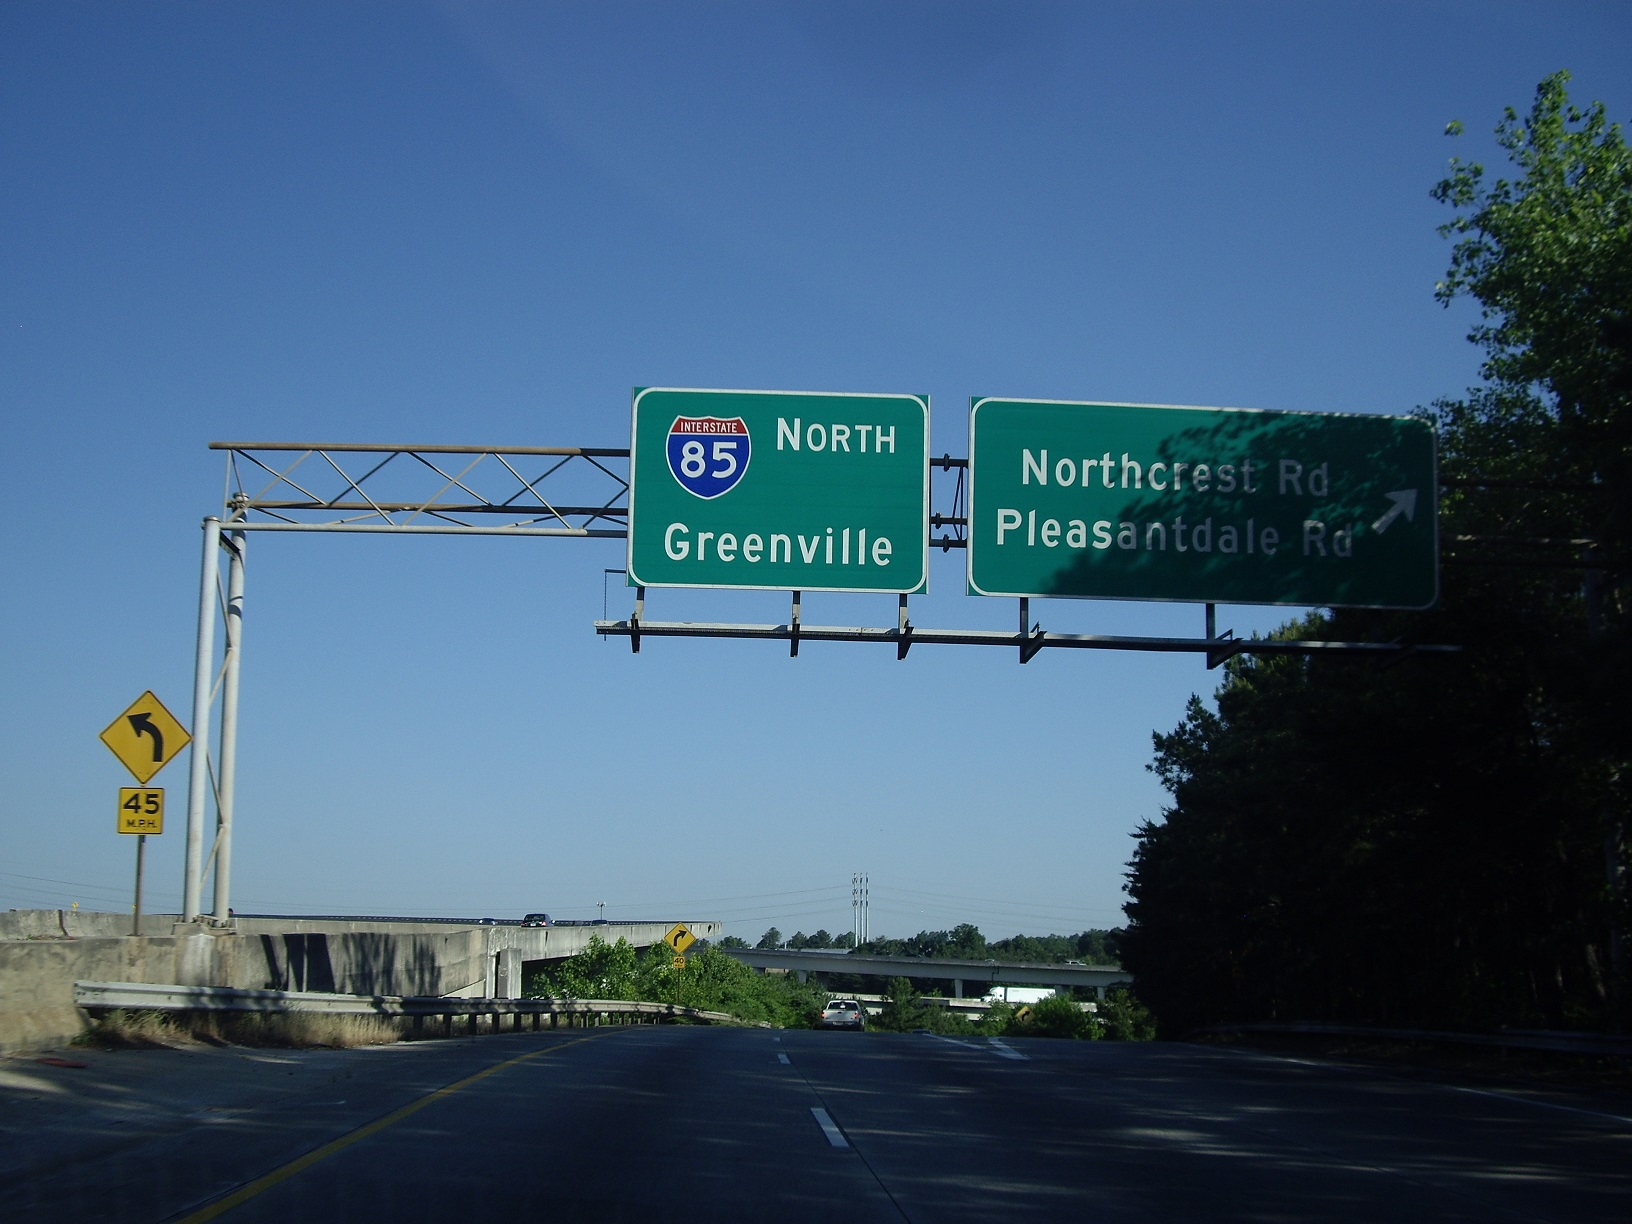 I-85 North Greenville